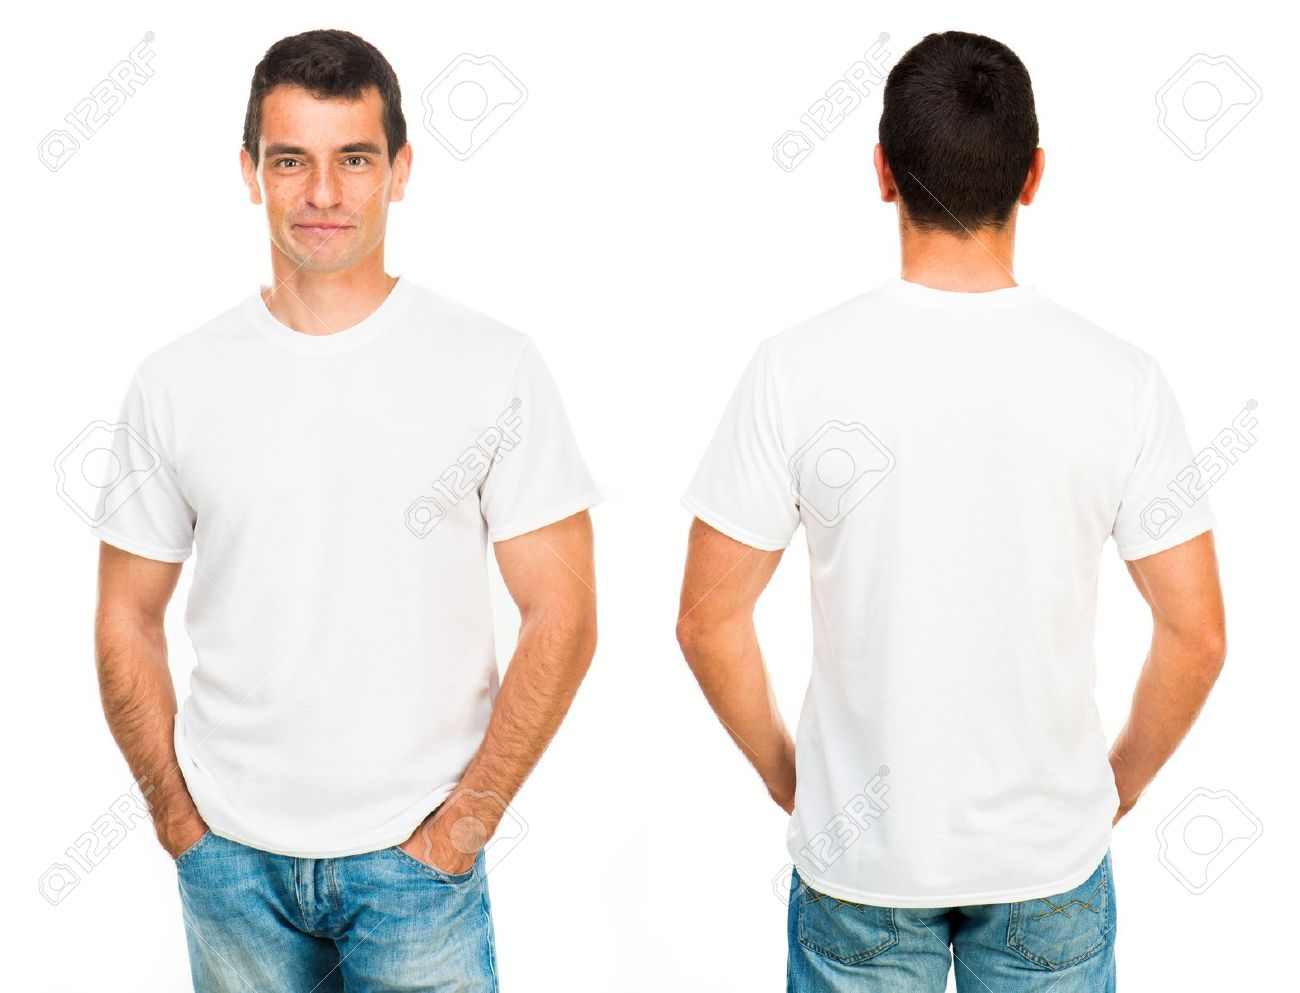 1,601 T Shirt Model Stock Illustrations, Cliparts And Royalty Free ...